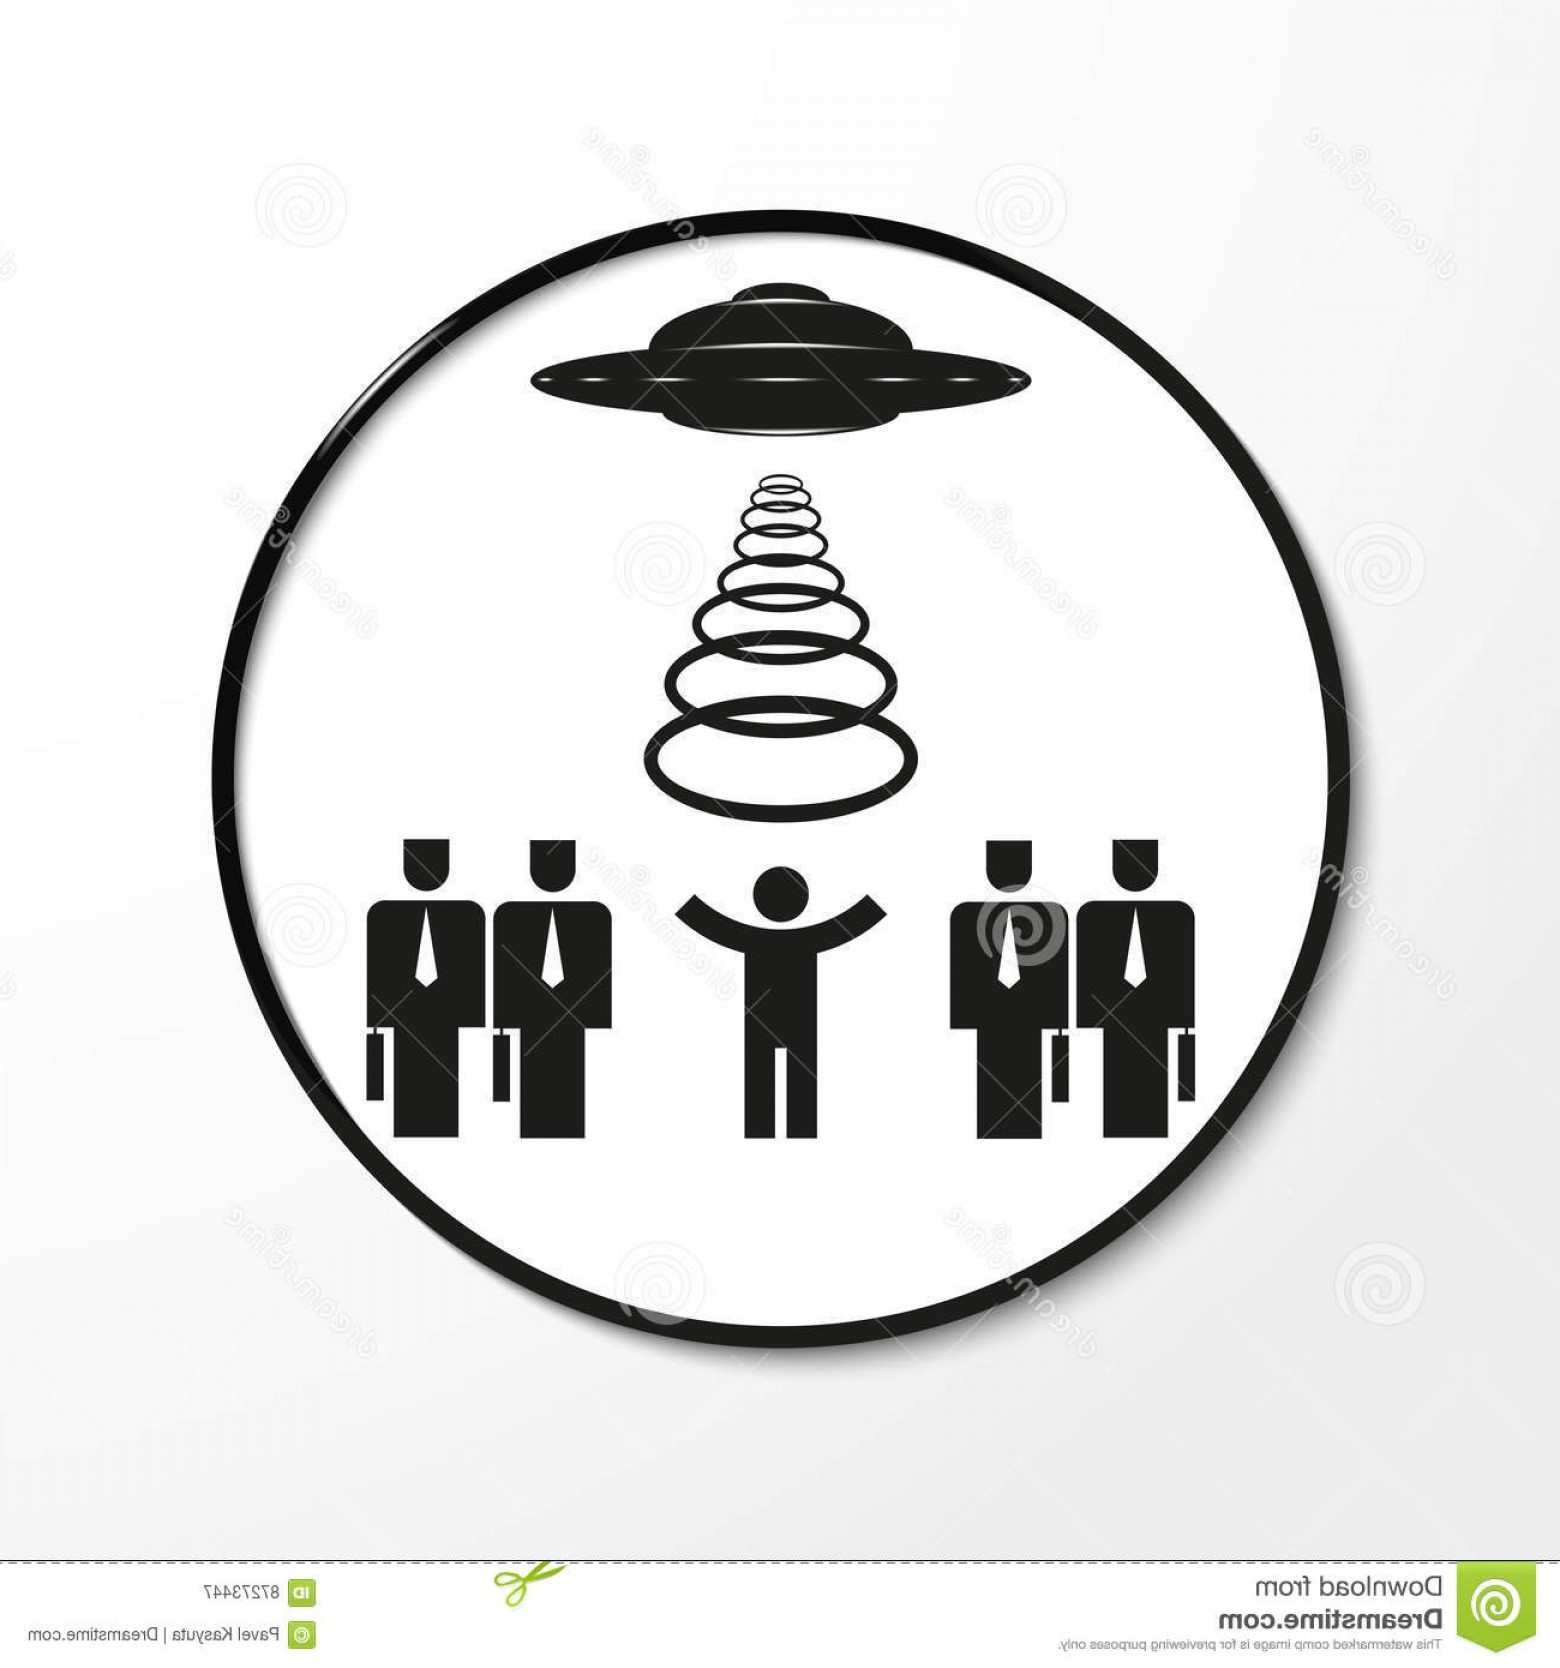 Vector Black And White Organization: Stock Illustration Kidnapping Secret Organization Aliens Vector Illustration Black White View Image Specific Background Image